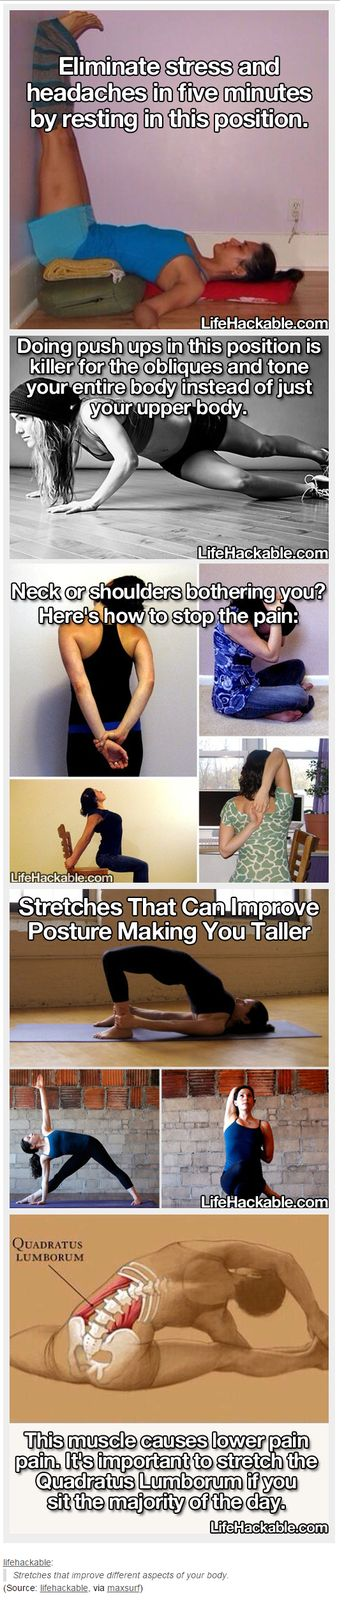 Stretches that improve different aspects of your body